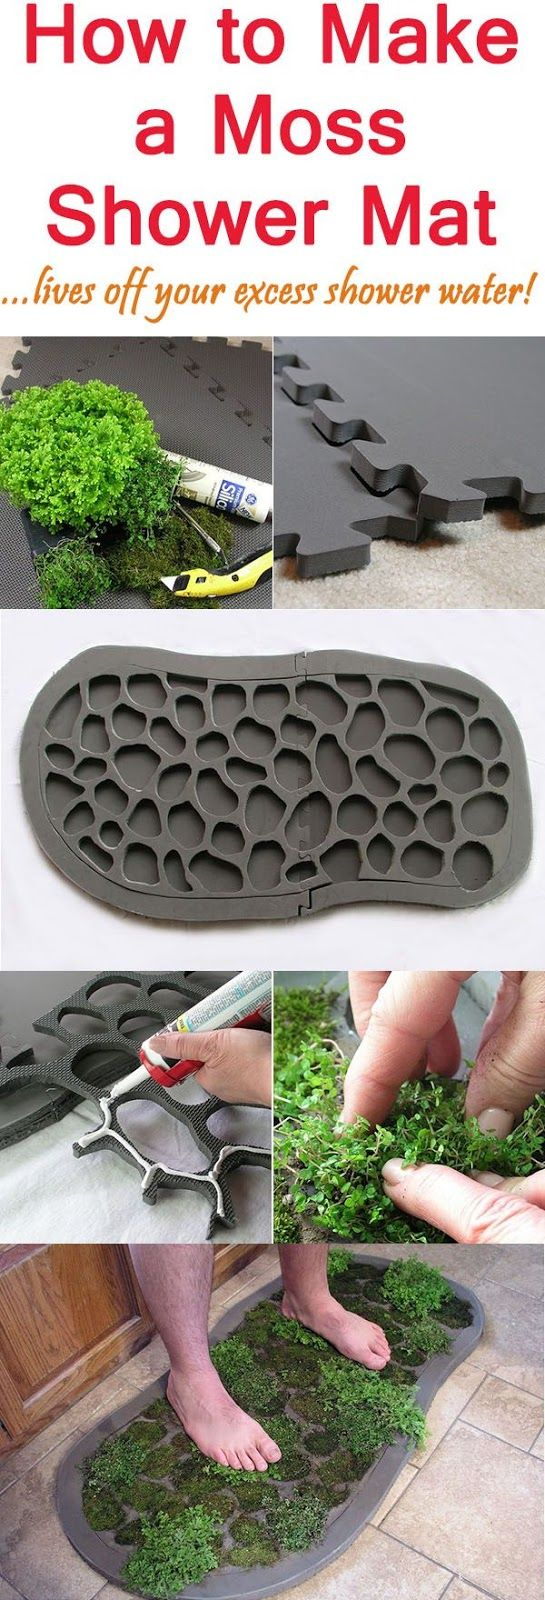 Best Shower Mats Ideas On Pinterest Bath Mat Inspiration - Rubber backed bath mats for bathroom decorating ideas